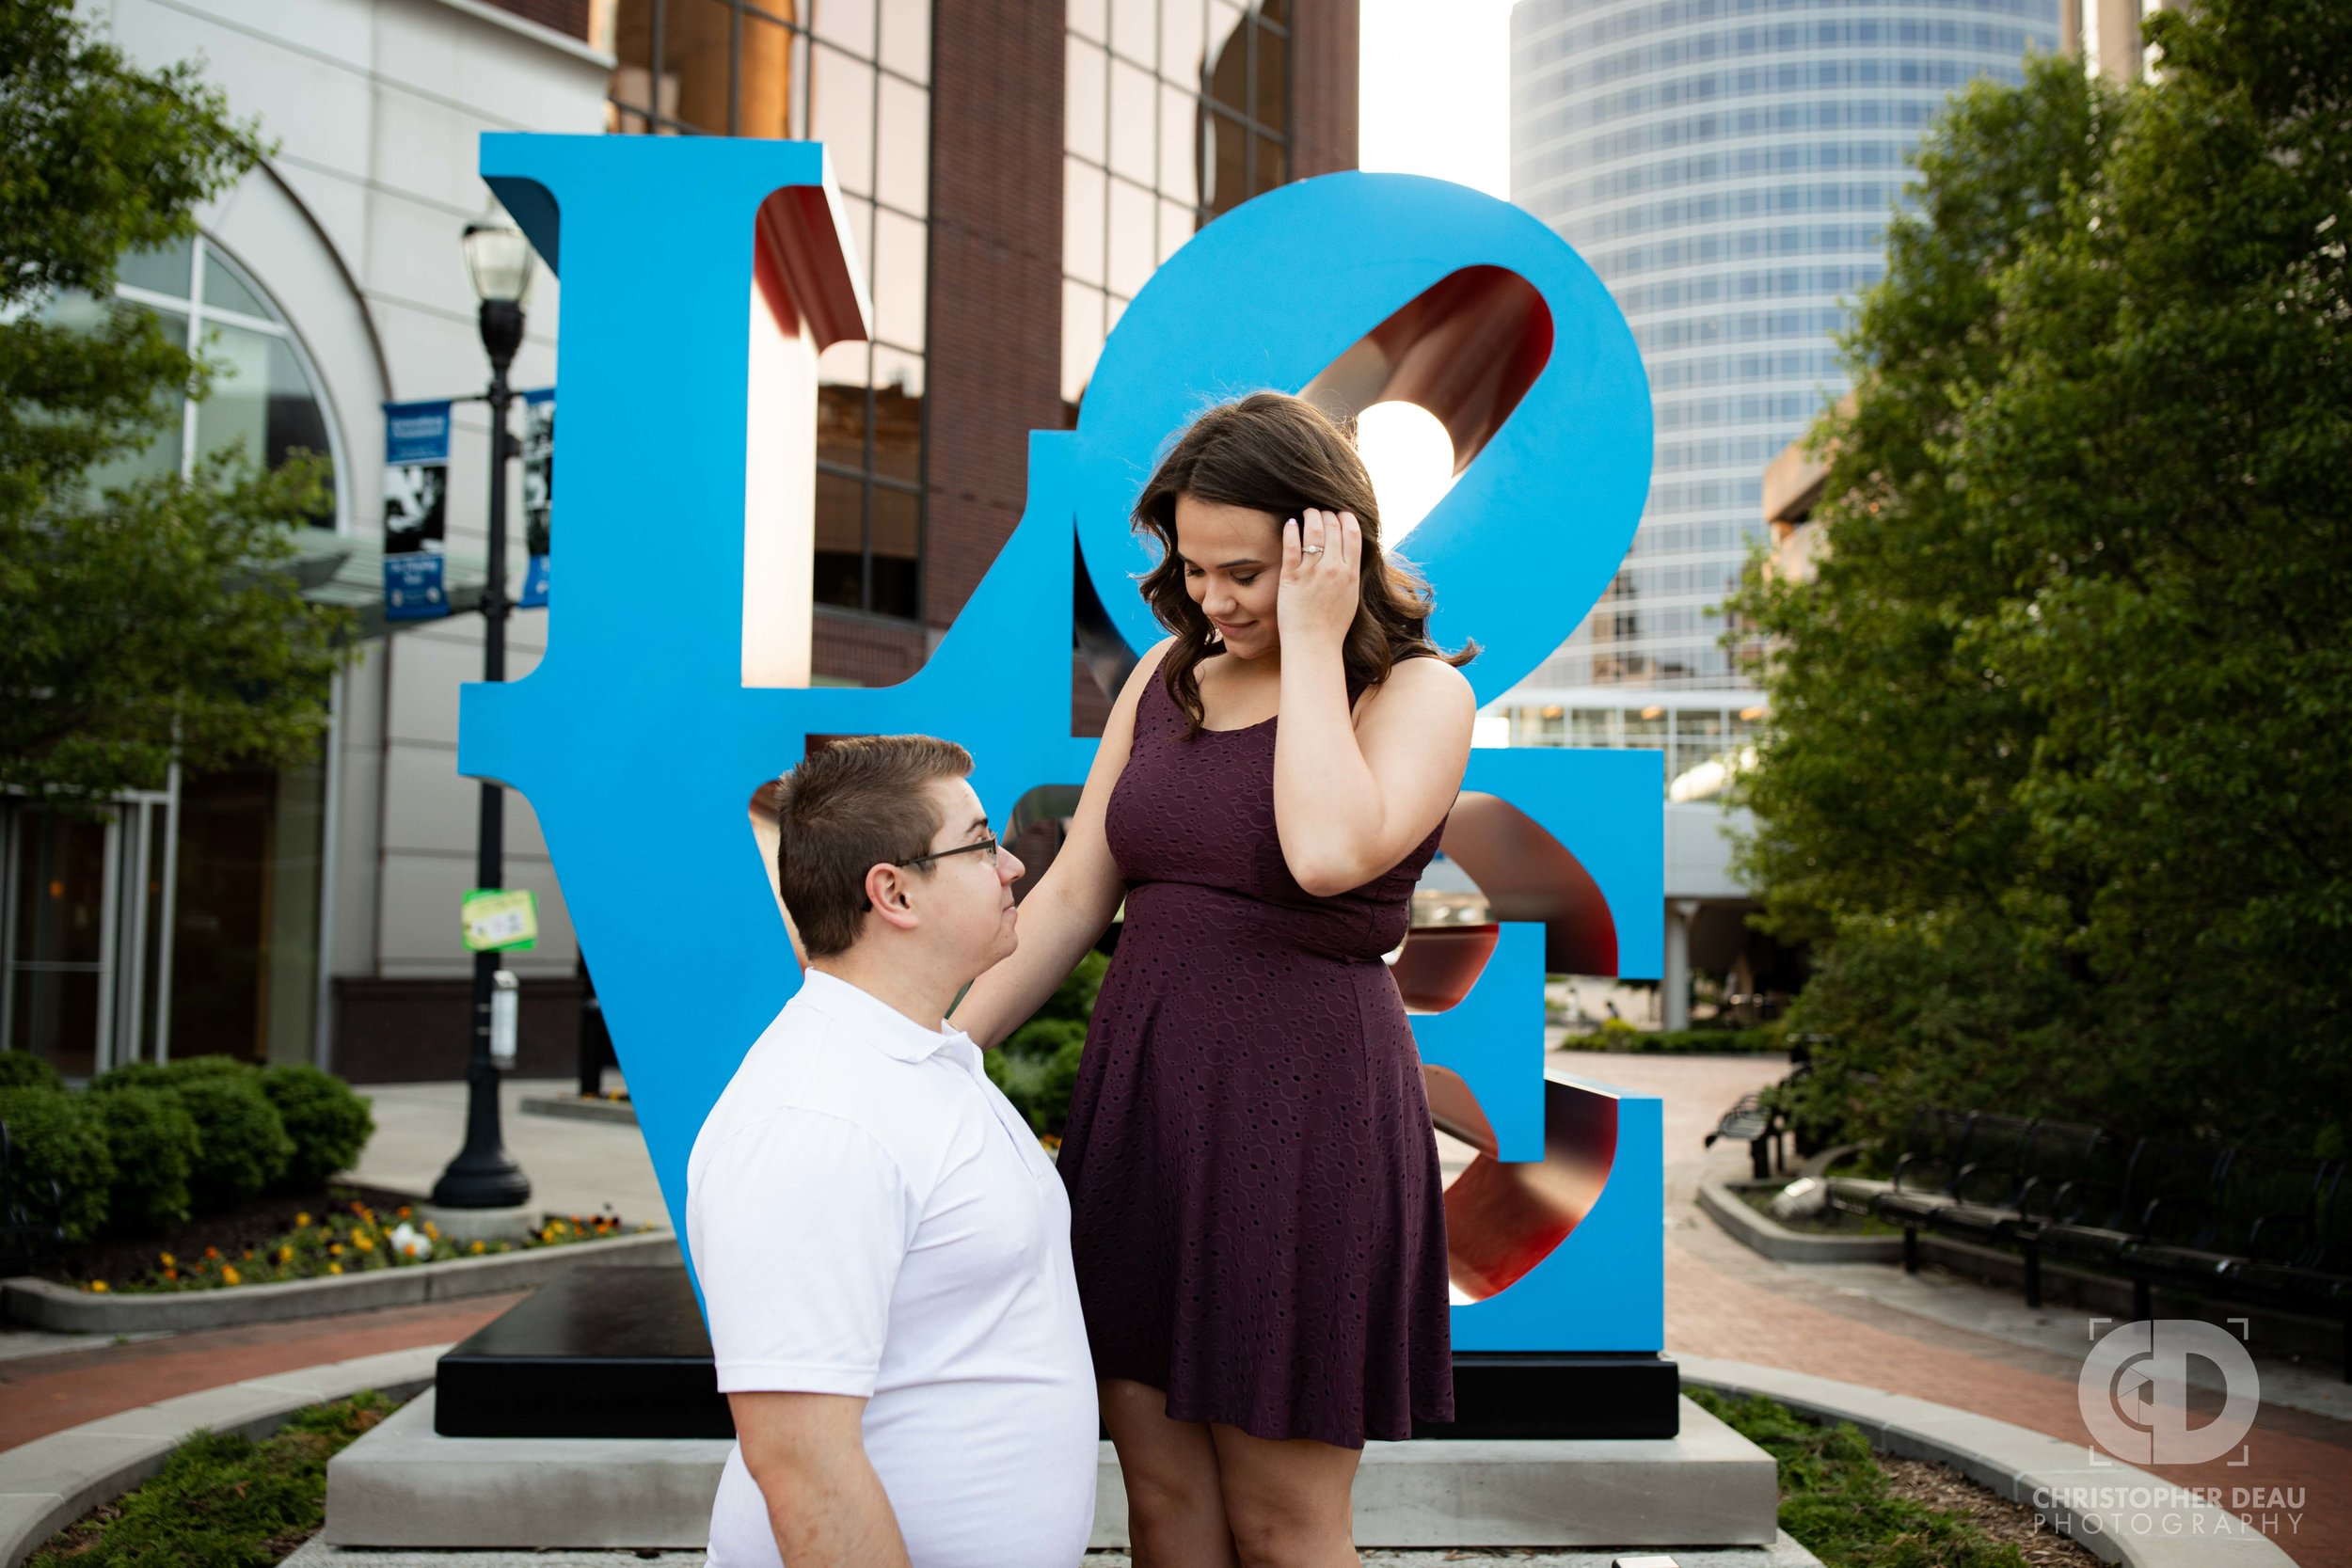 engagement photos grand rapids love sculpture.jpg